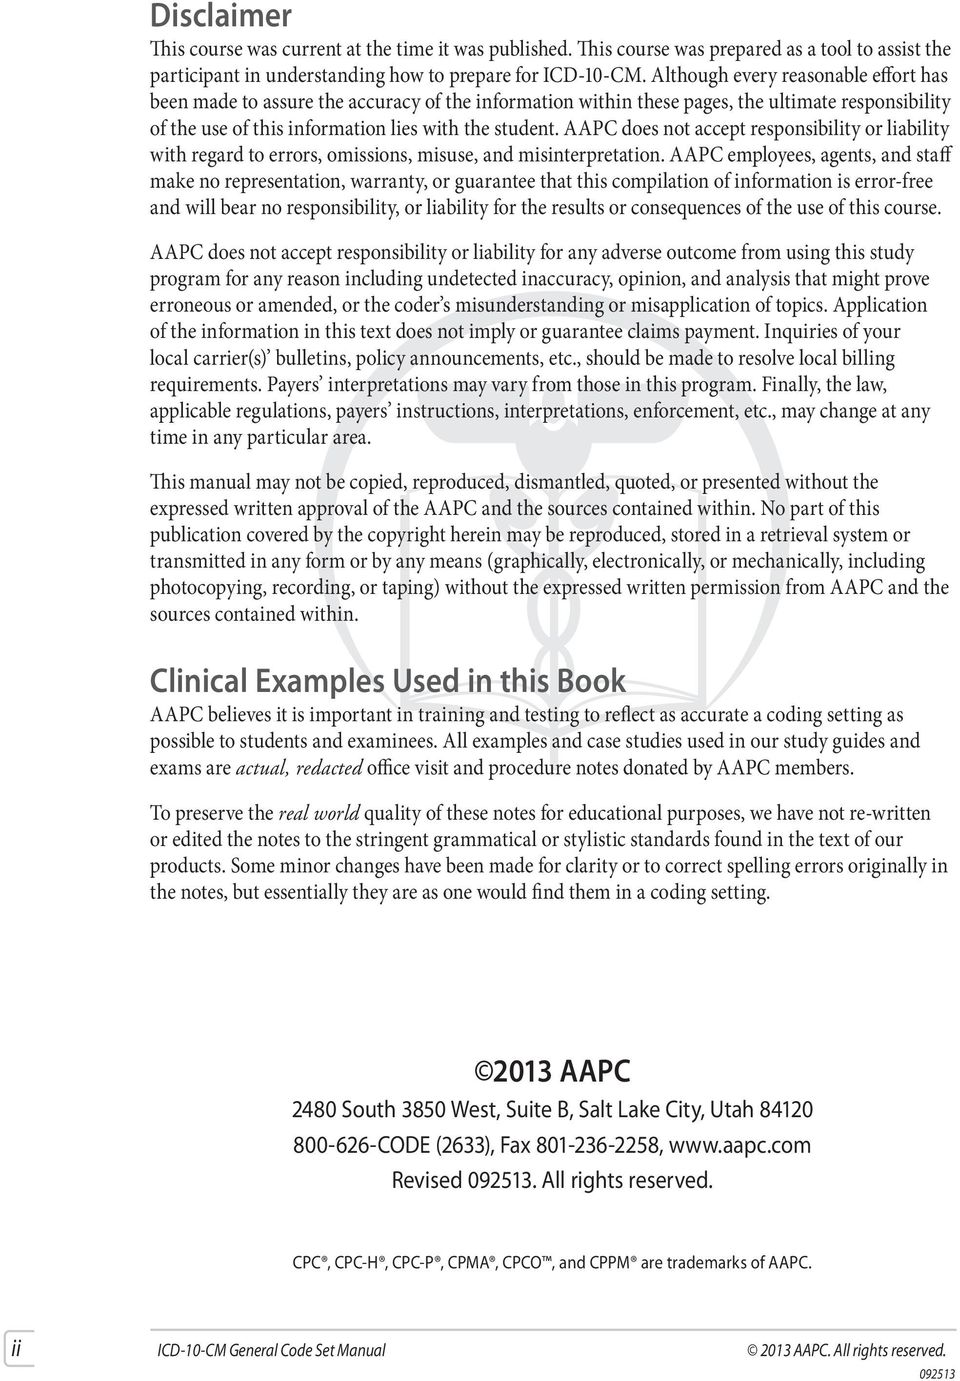 AAPC does not accept responsibility or liability with regard to errors,  omissions, misuse,